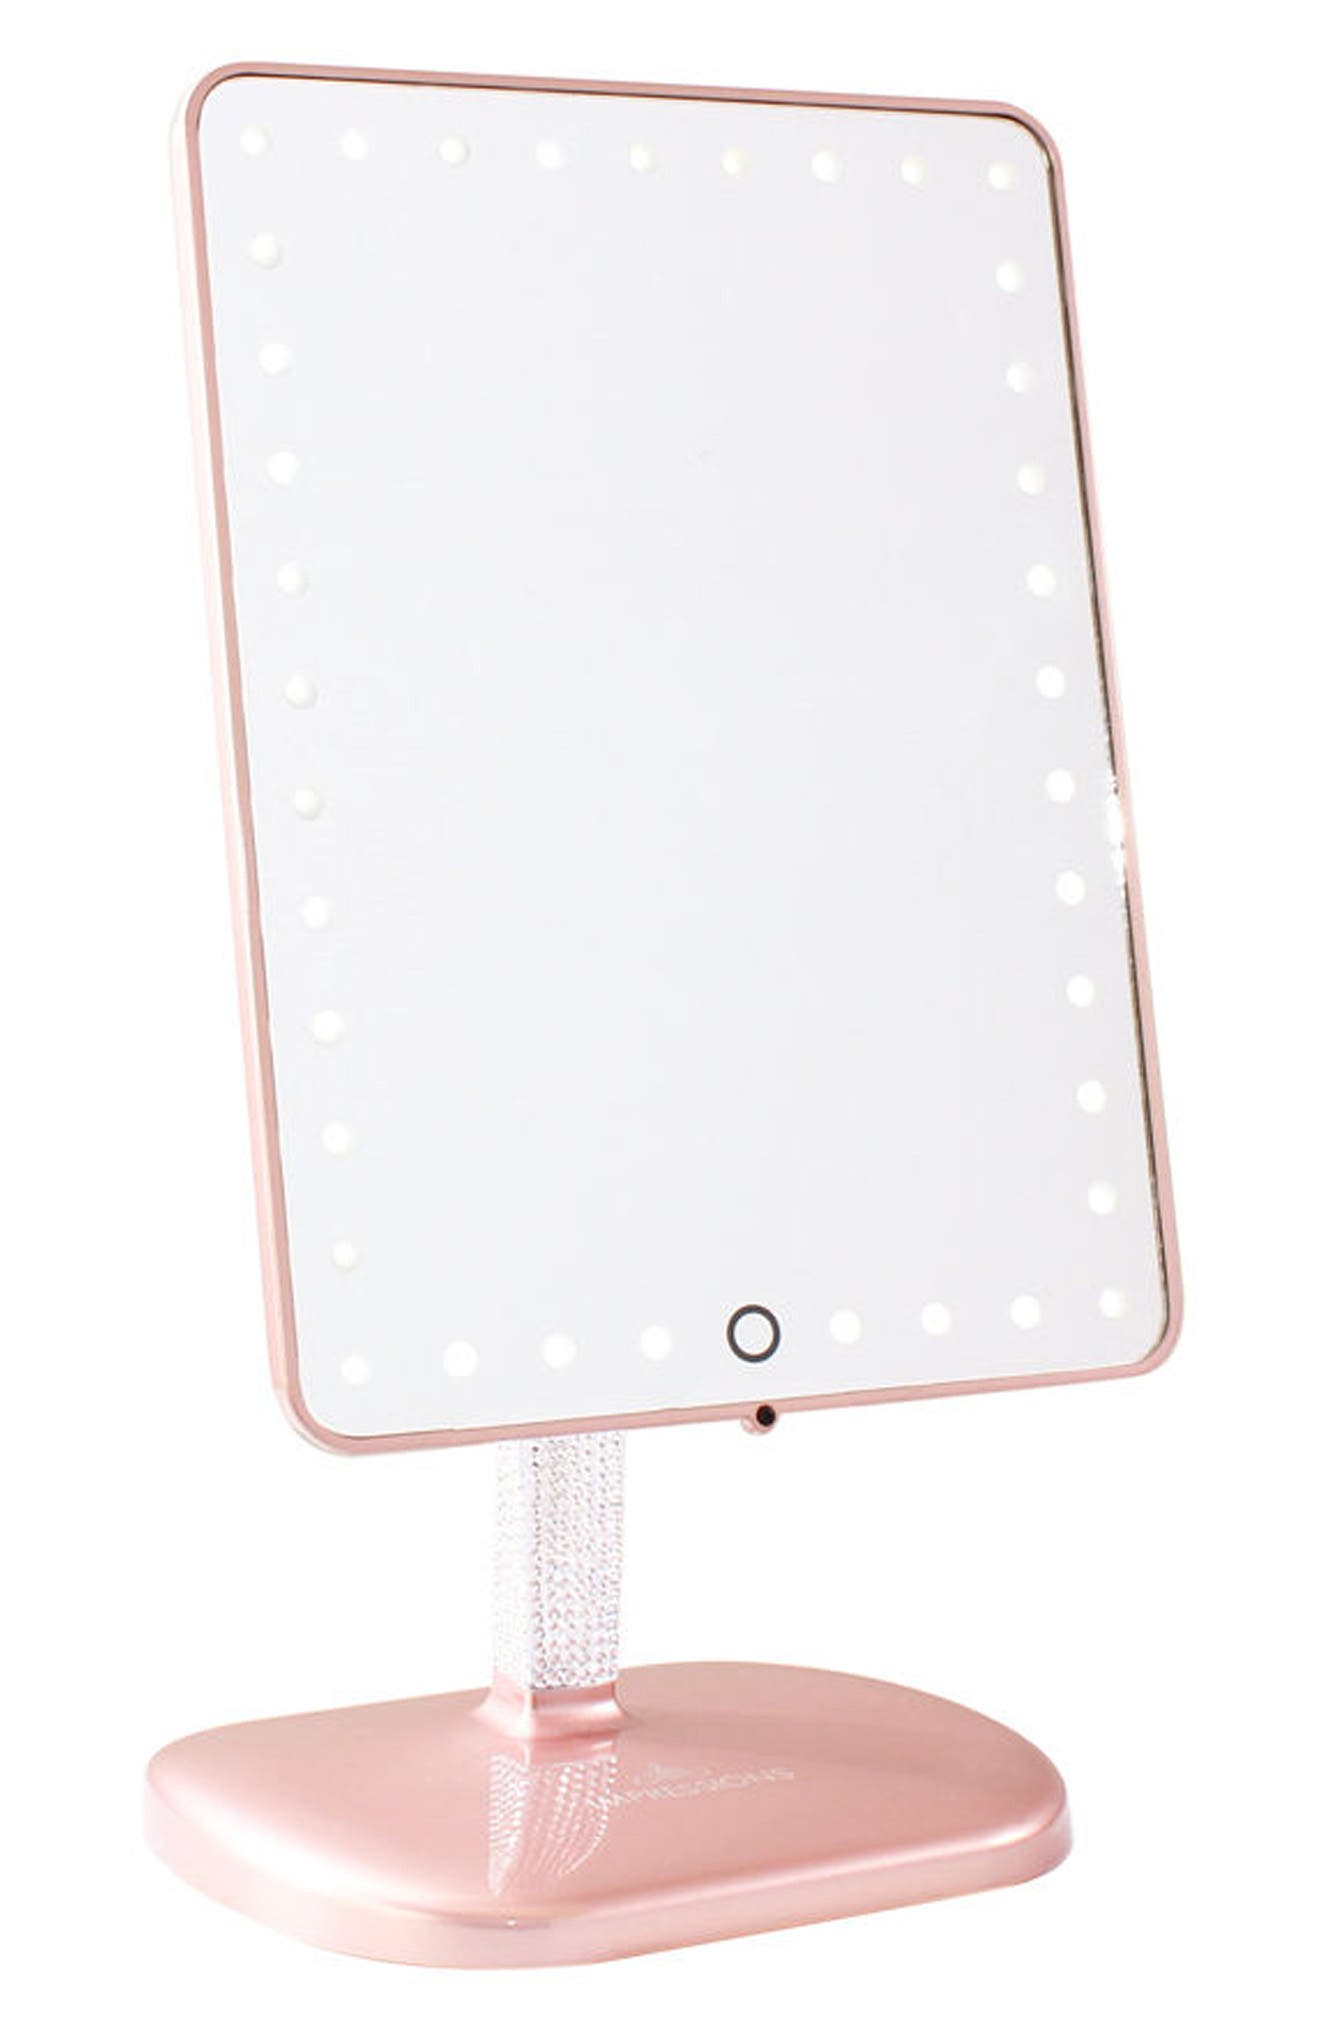 Main Image - Impressions Vanity Co. Touch Pro LED Makeup Mirror with Bluetooth® Audio & Speakerphone